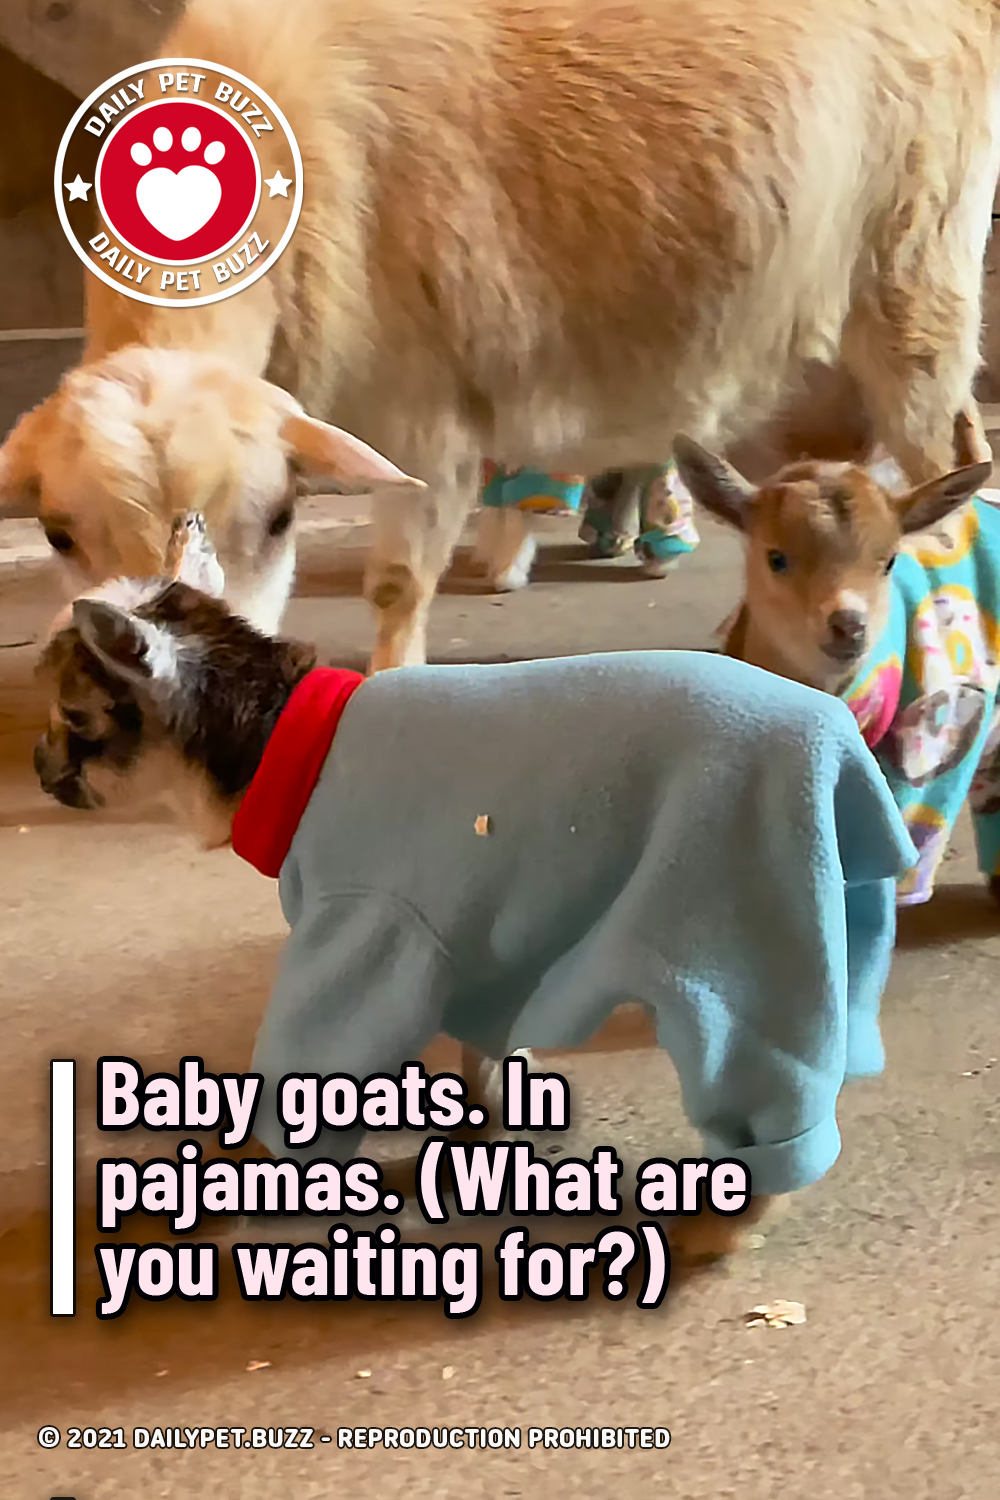 Baby goats. In pajamas. (What are you waiting for?)